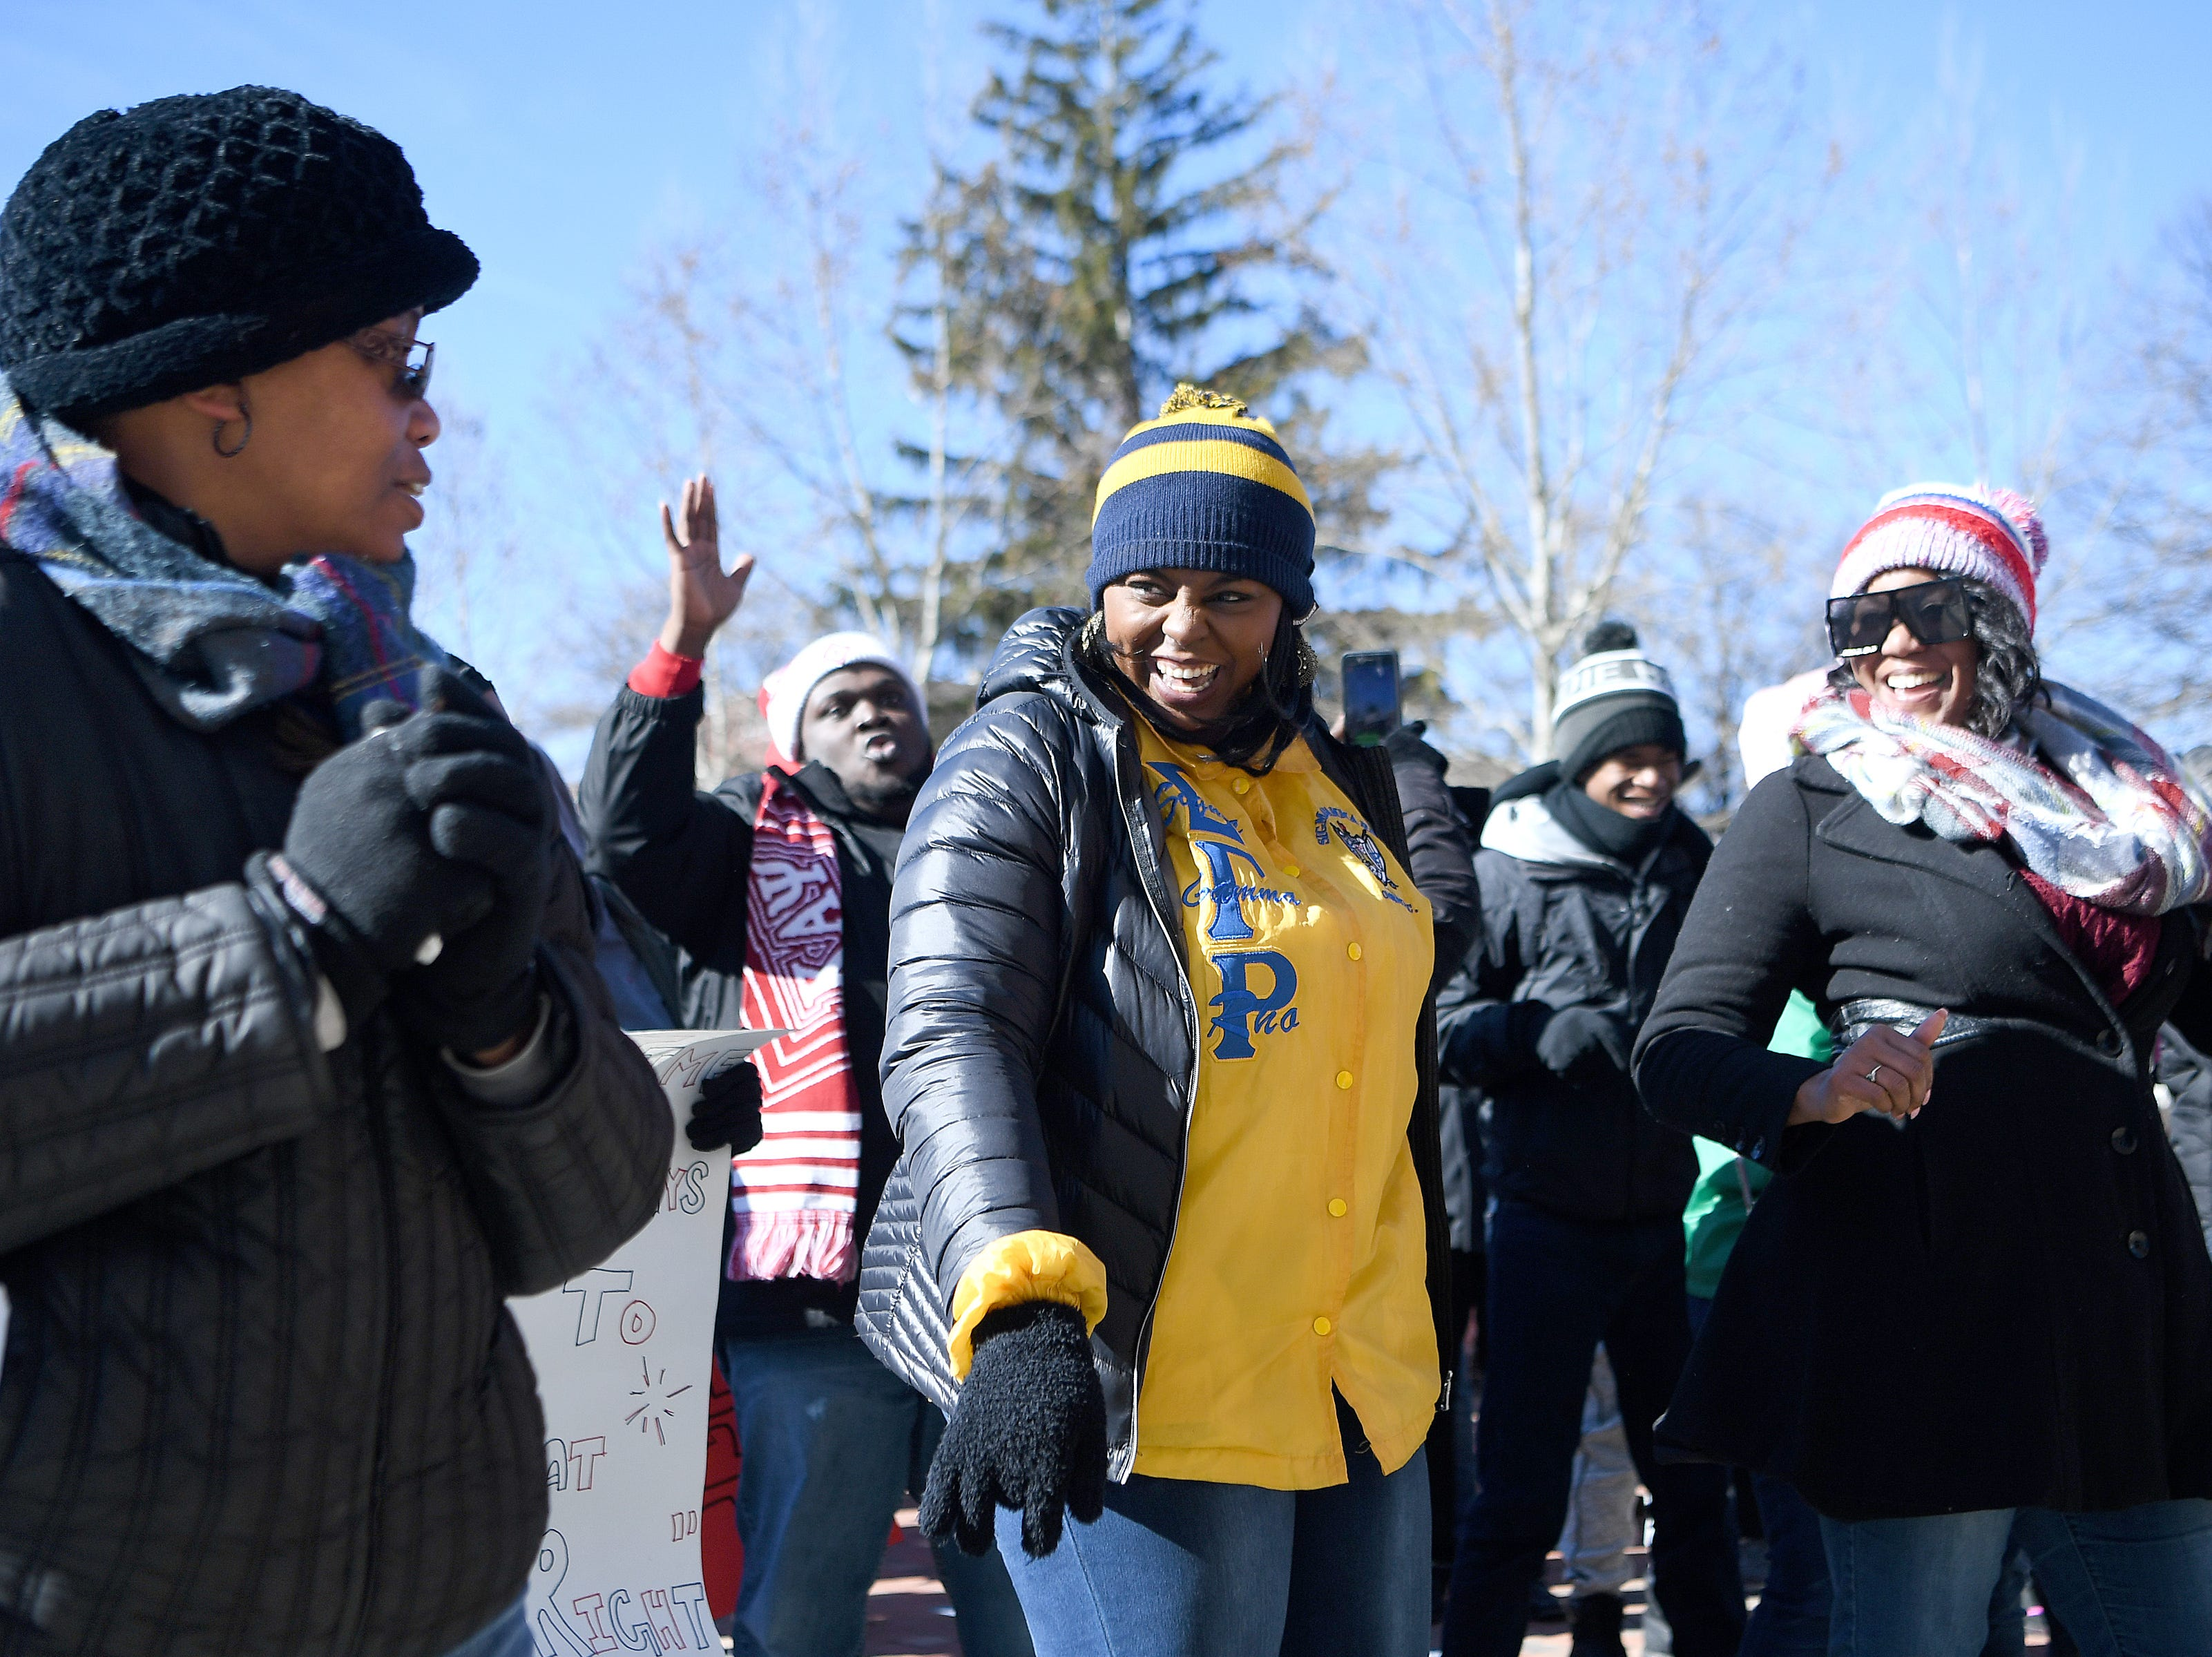 Alexis Wardlow, center, and Elizabeth Garland, right, do the Electric Slide during the Dr. Martin Luther King, Jr. Peace March and Rally at Pack Square Park on Jan. 21, 2019.